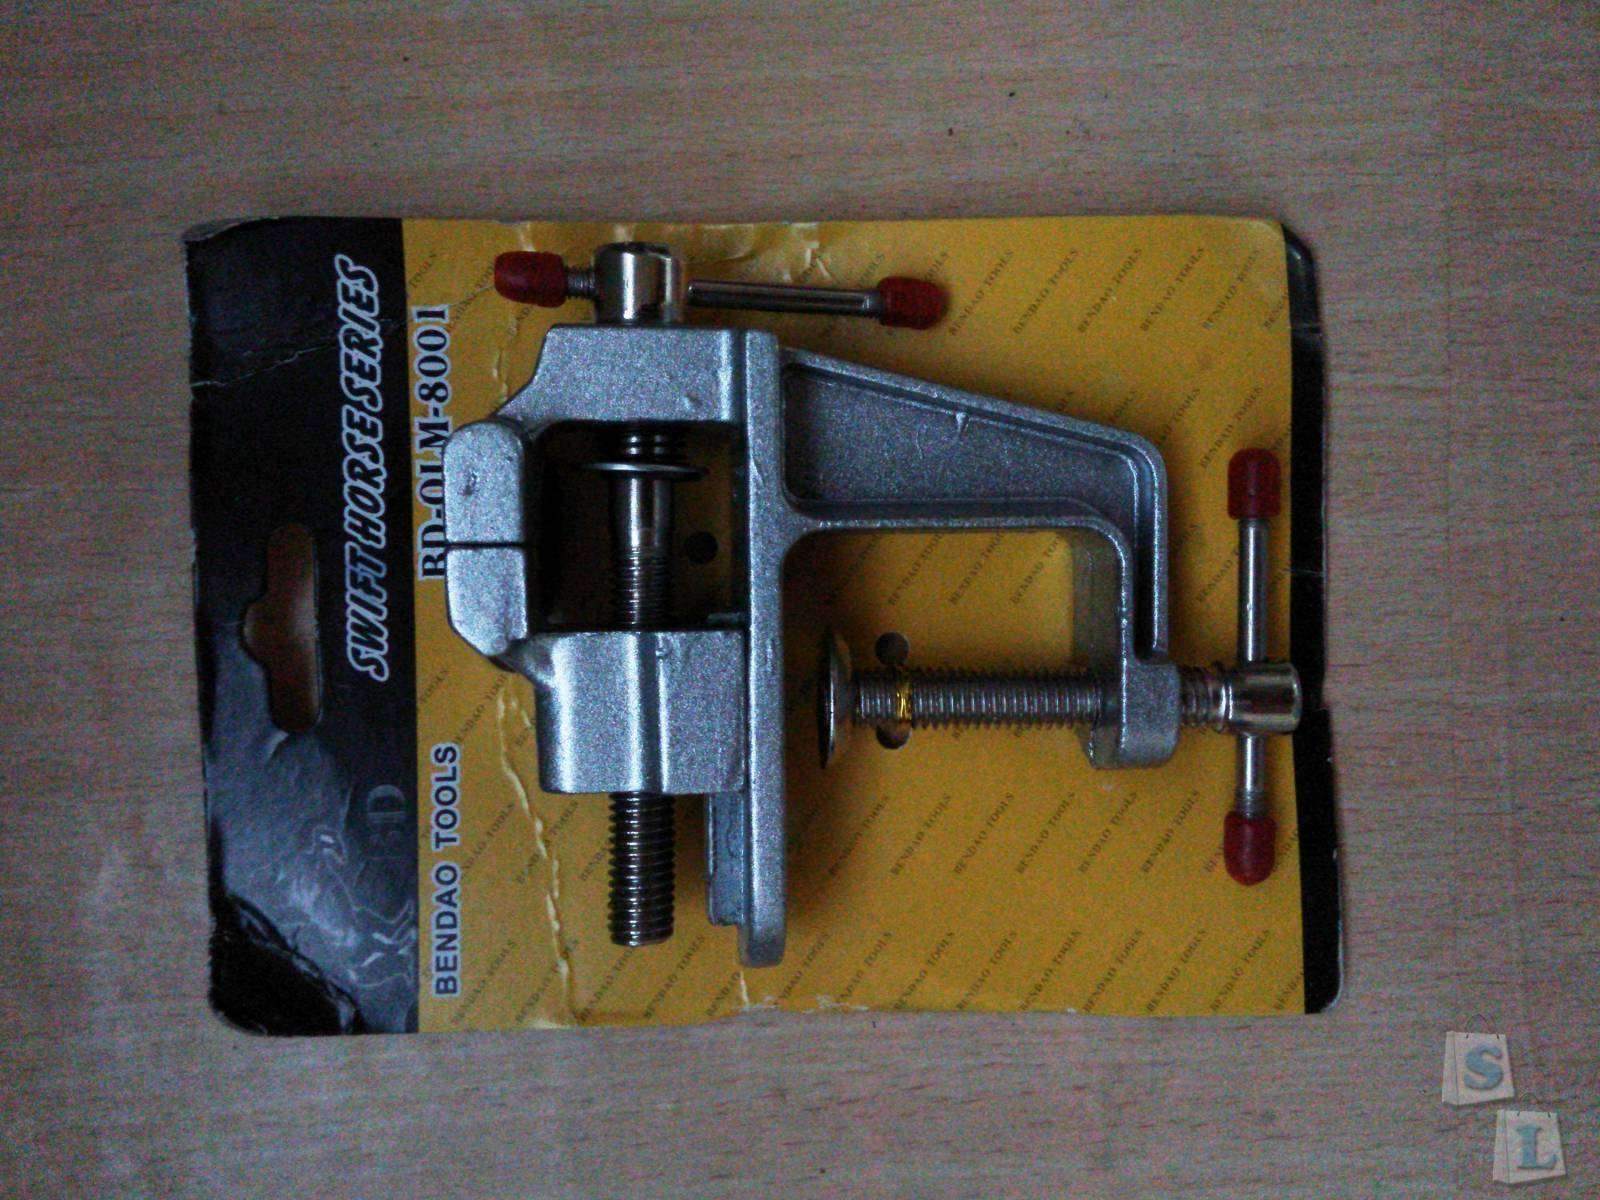 BuyinCoins: Aluminum Miniature Jewelers Hobby Clamp On Table Bench Vise Vice Tool